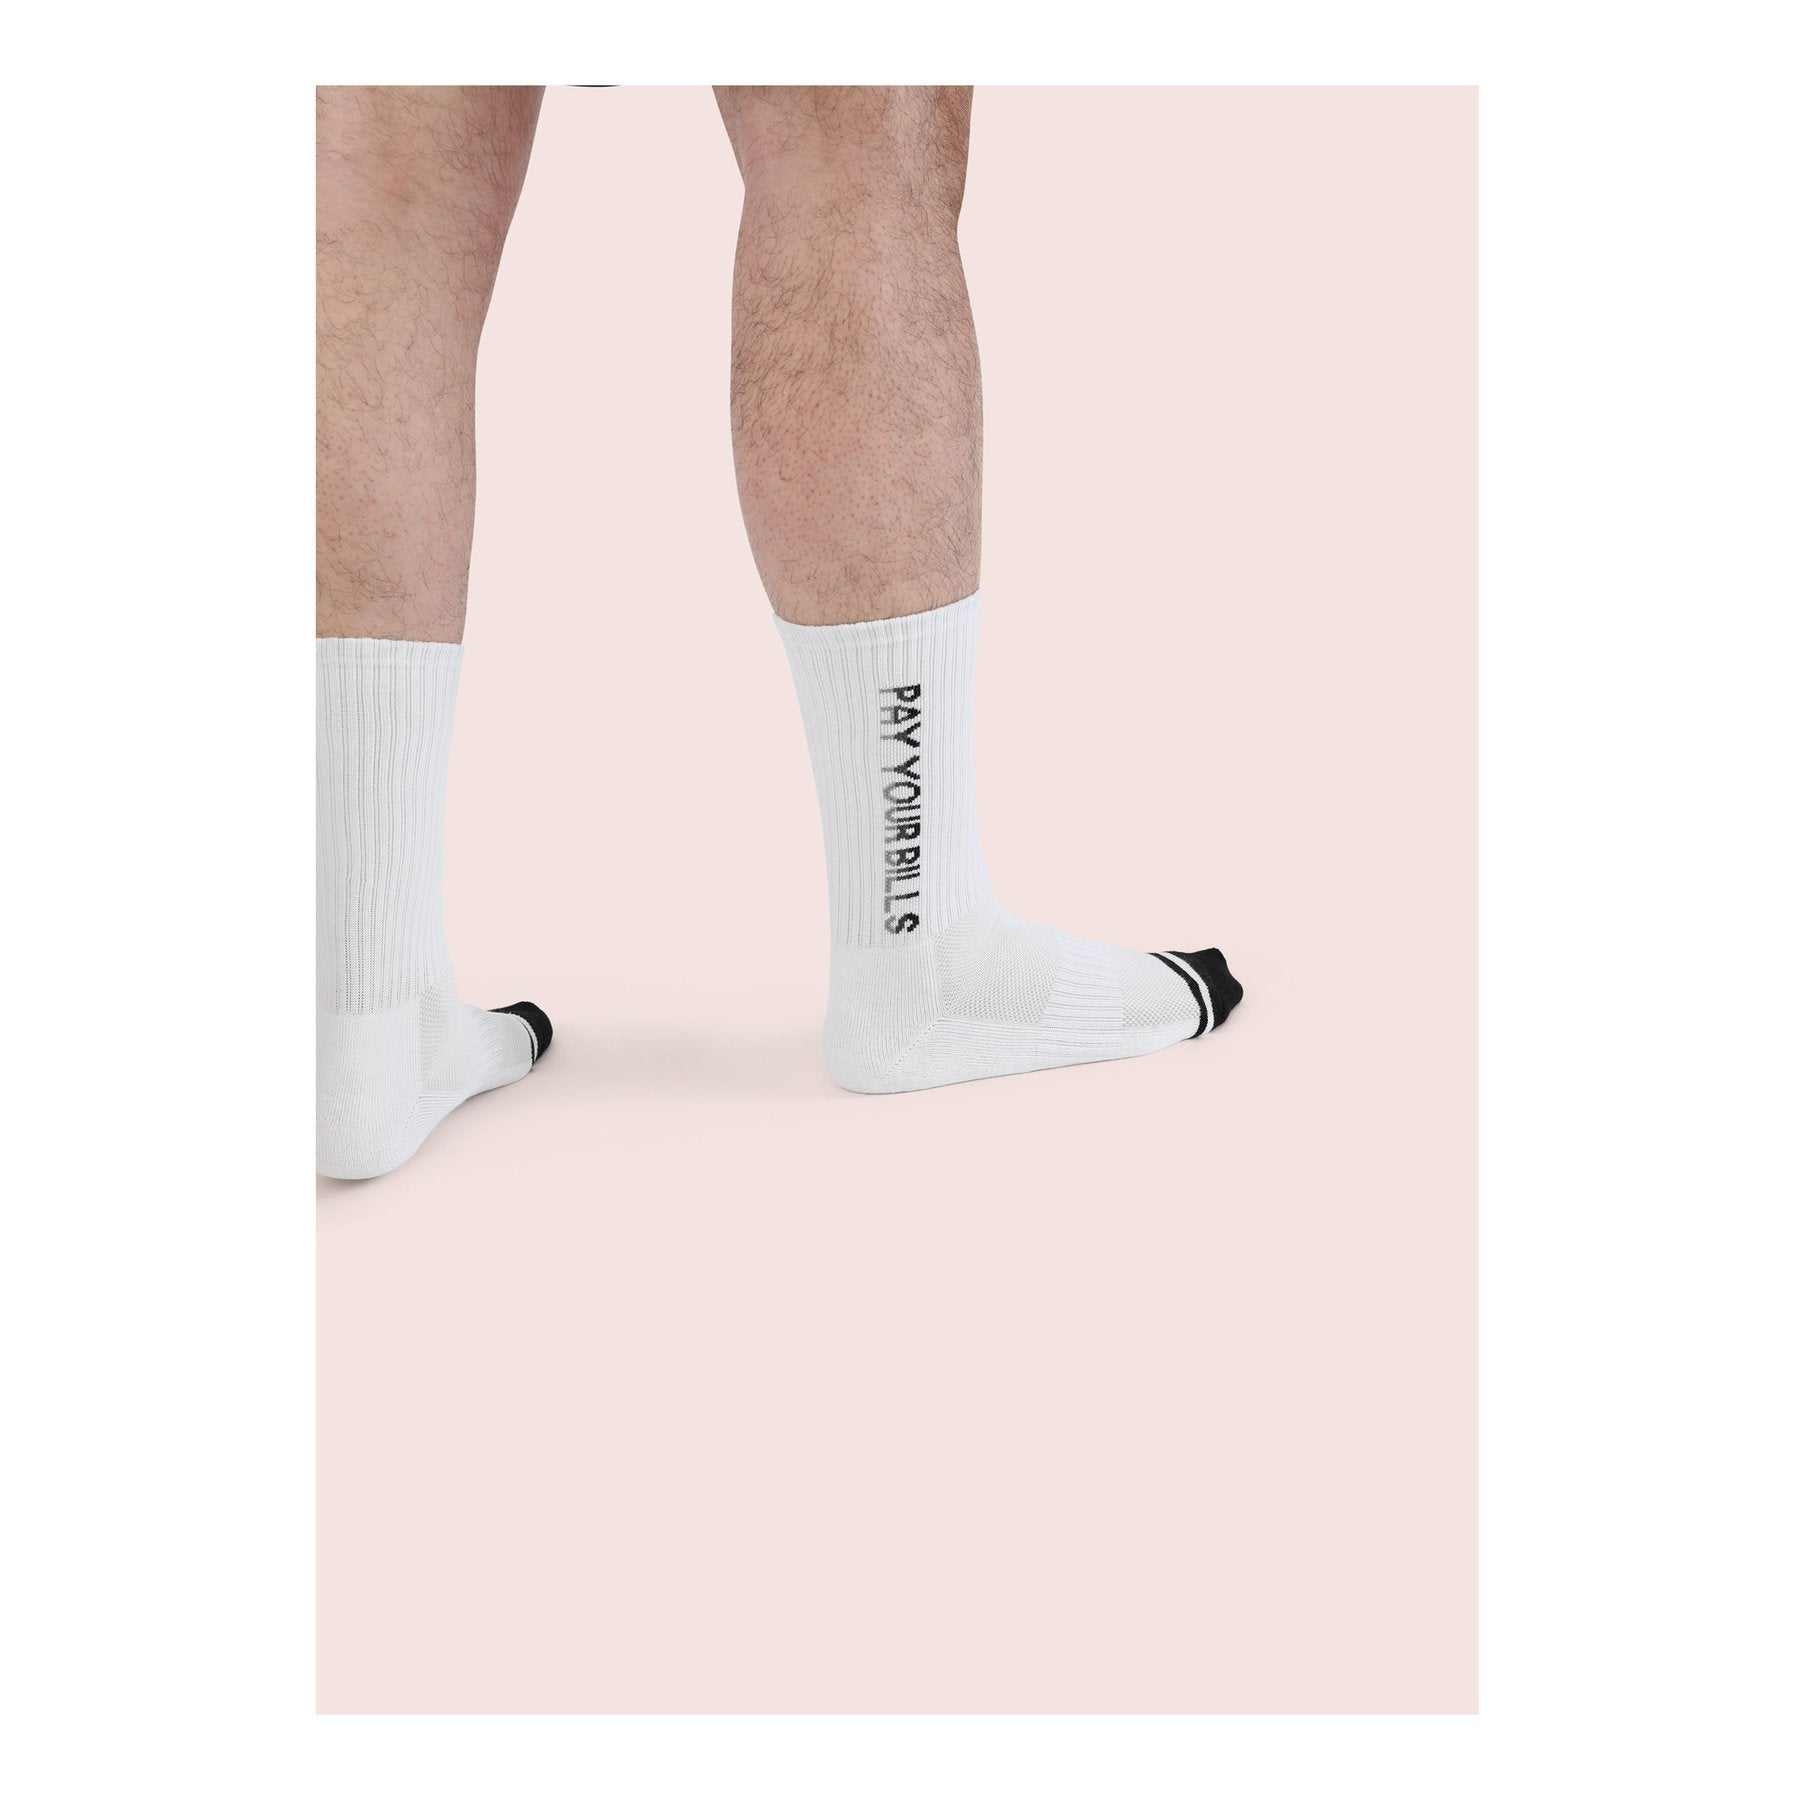 Necessary Anywhere White Pay Your Bills Ninety Seven Socks